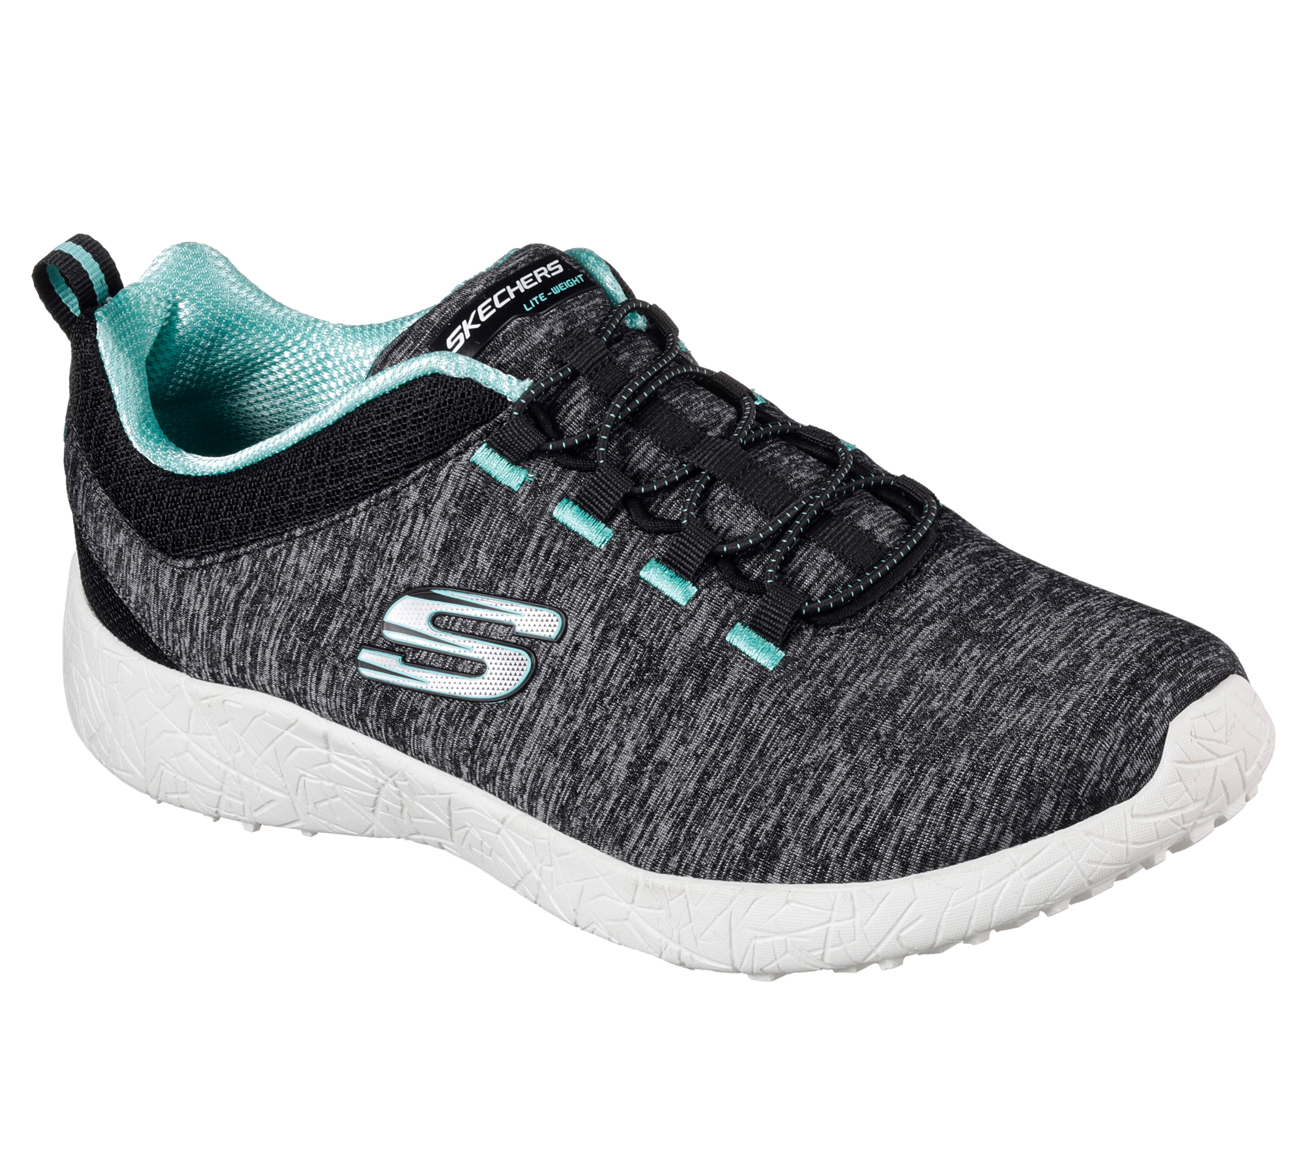 SKECHERS Women's Energy Burst - Equinox - SKECHERS Canada